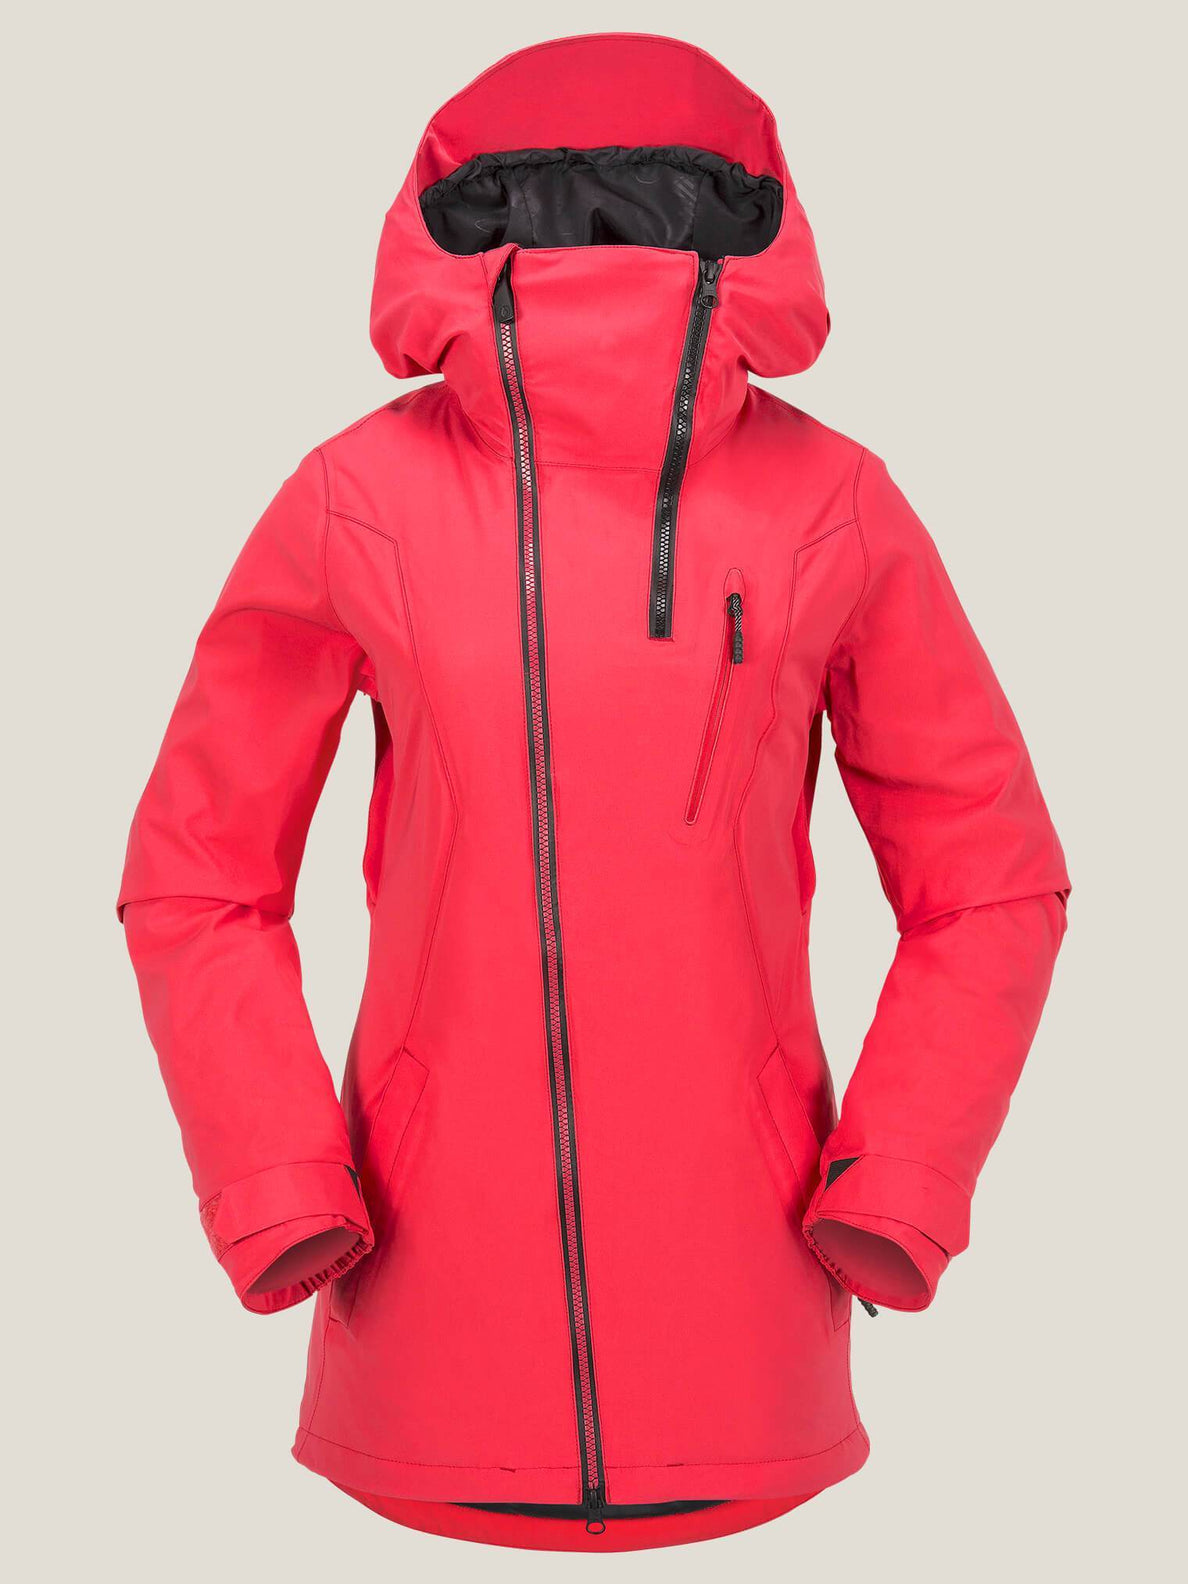 V Insulated Gore-tex® Stretch Jacket In Bright Rose, Front View